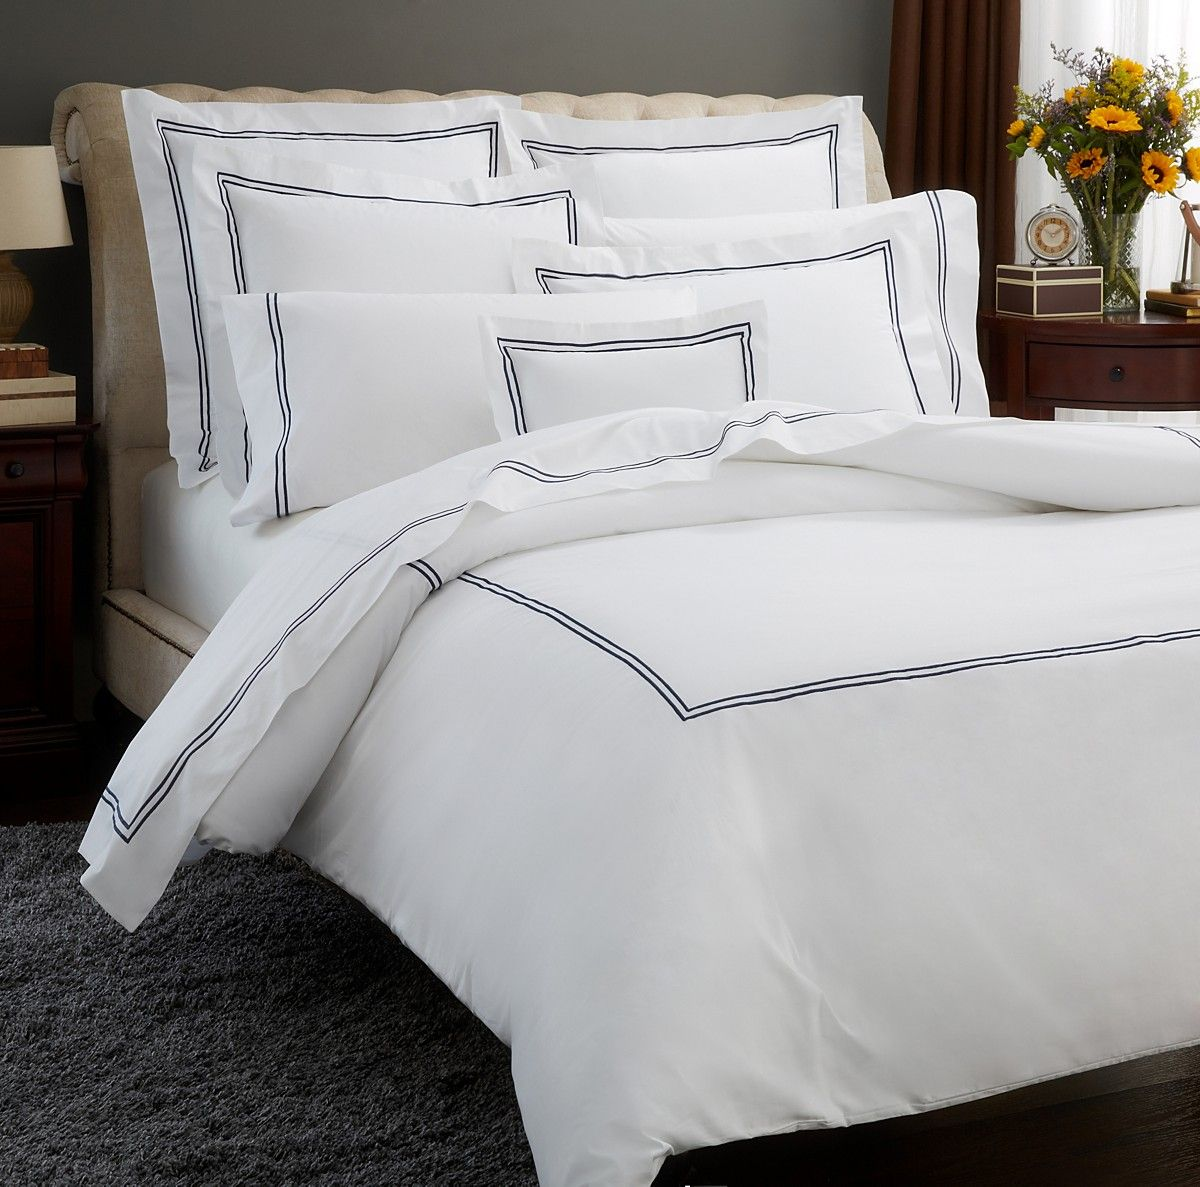 KAMASH offers high quality luxury hotel bed linens that feel ...